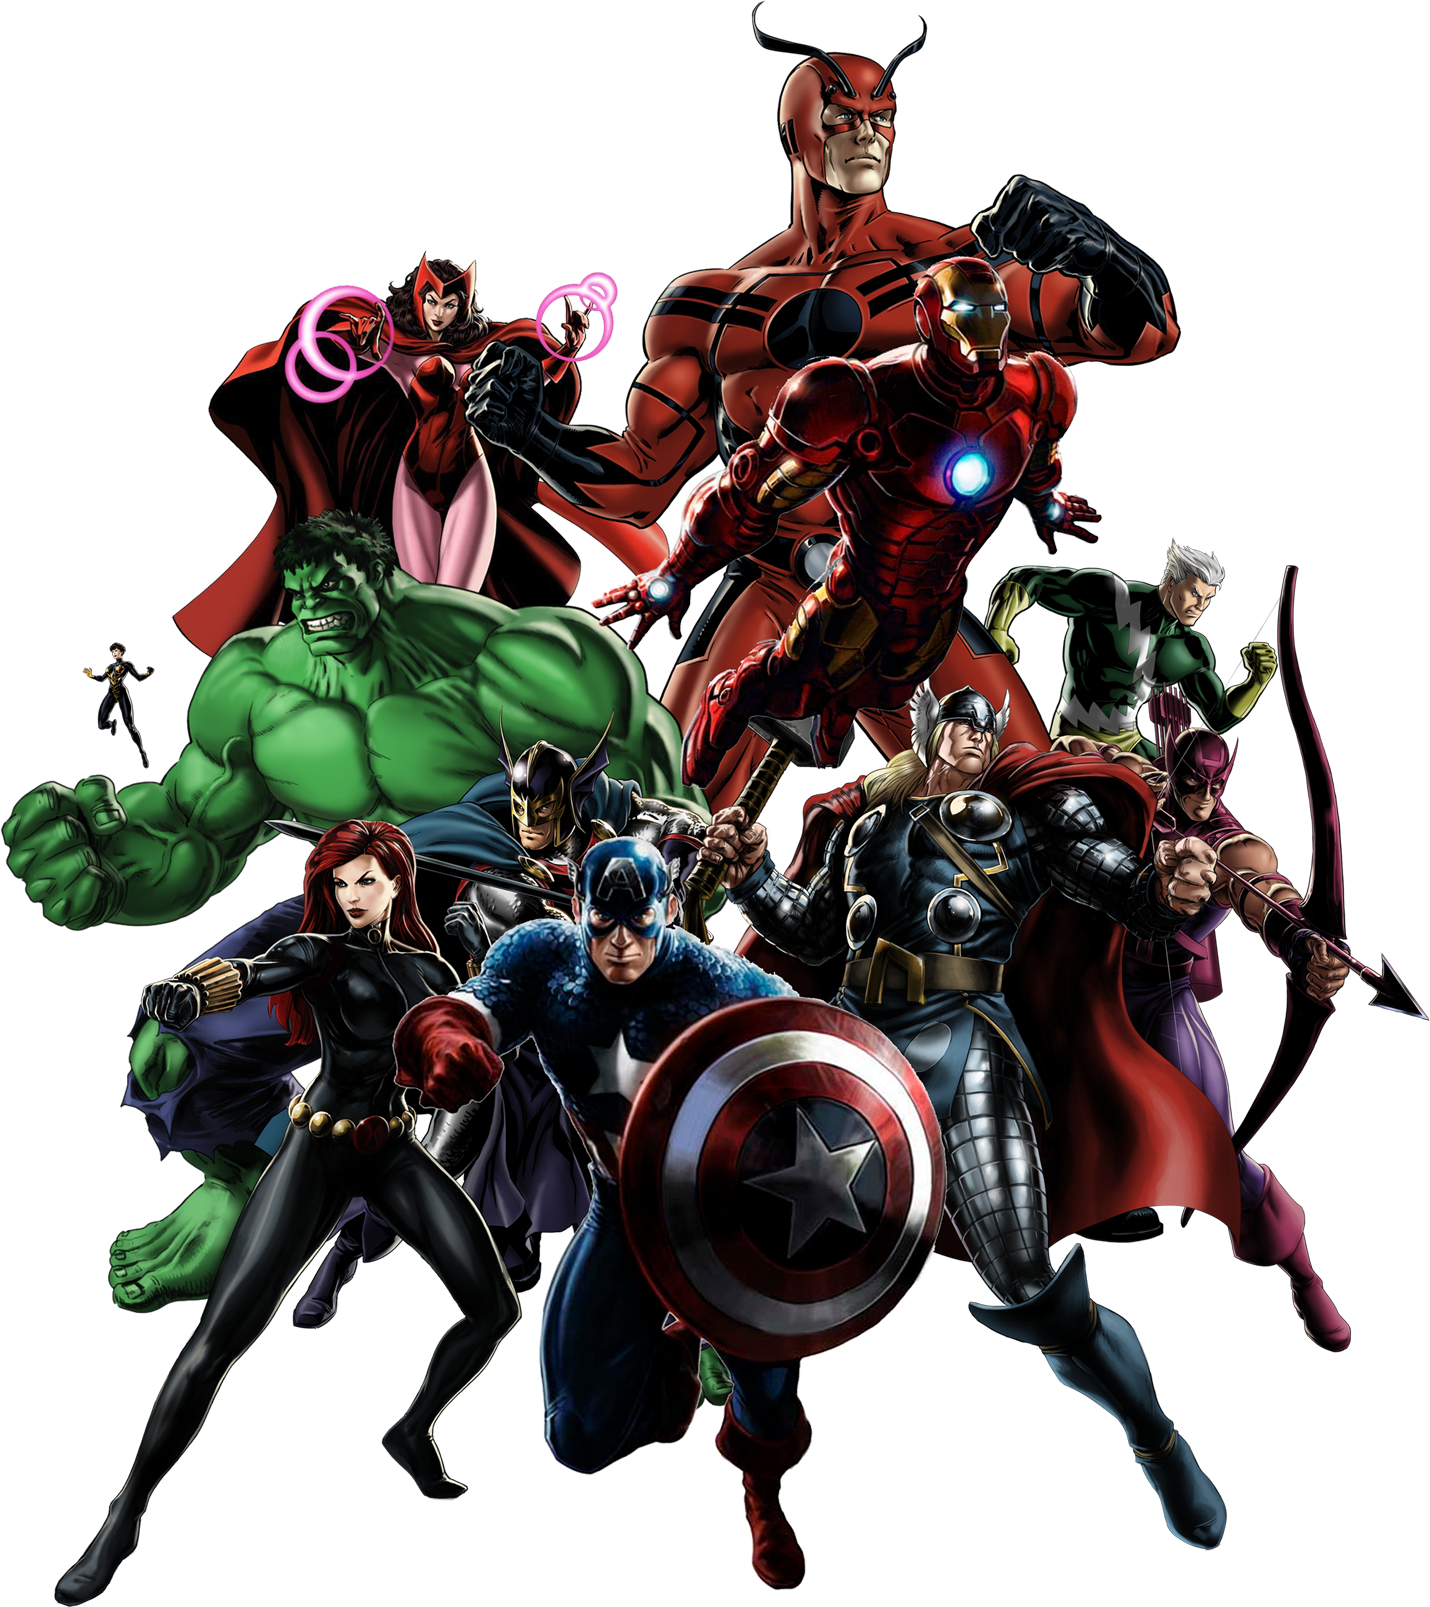 Marvel superhero clipart clipart transparent Avengers (Earth-12131) | Marvel Database | FANDOM powered by Wikia clipart transparent